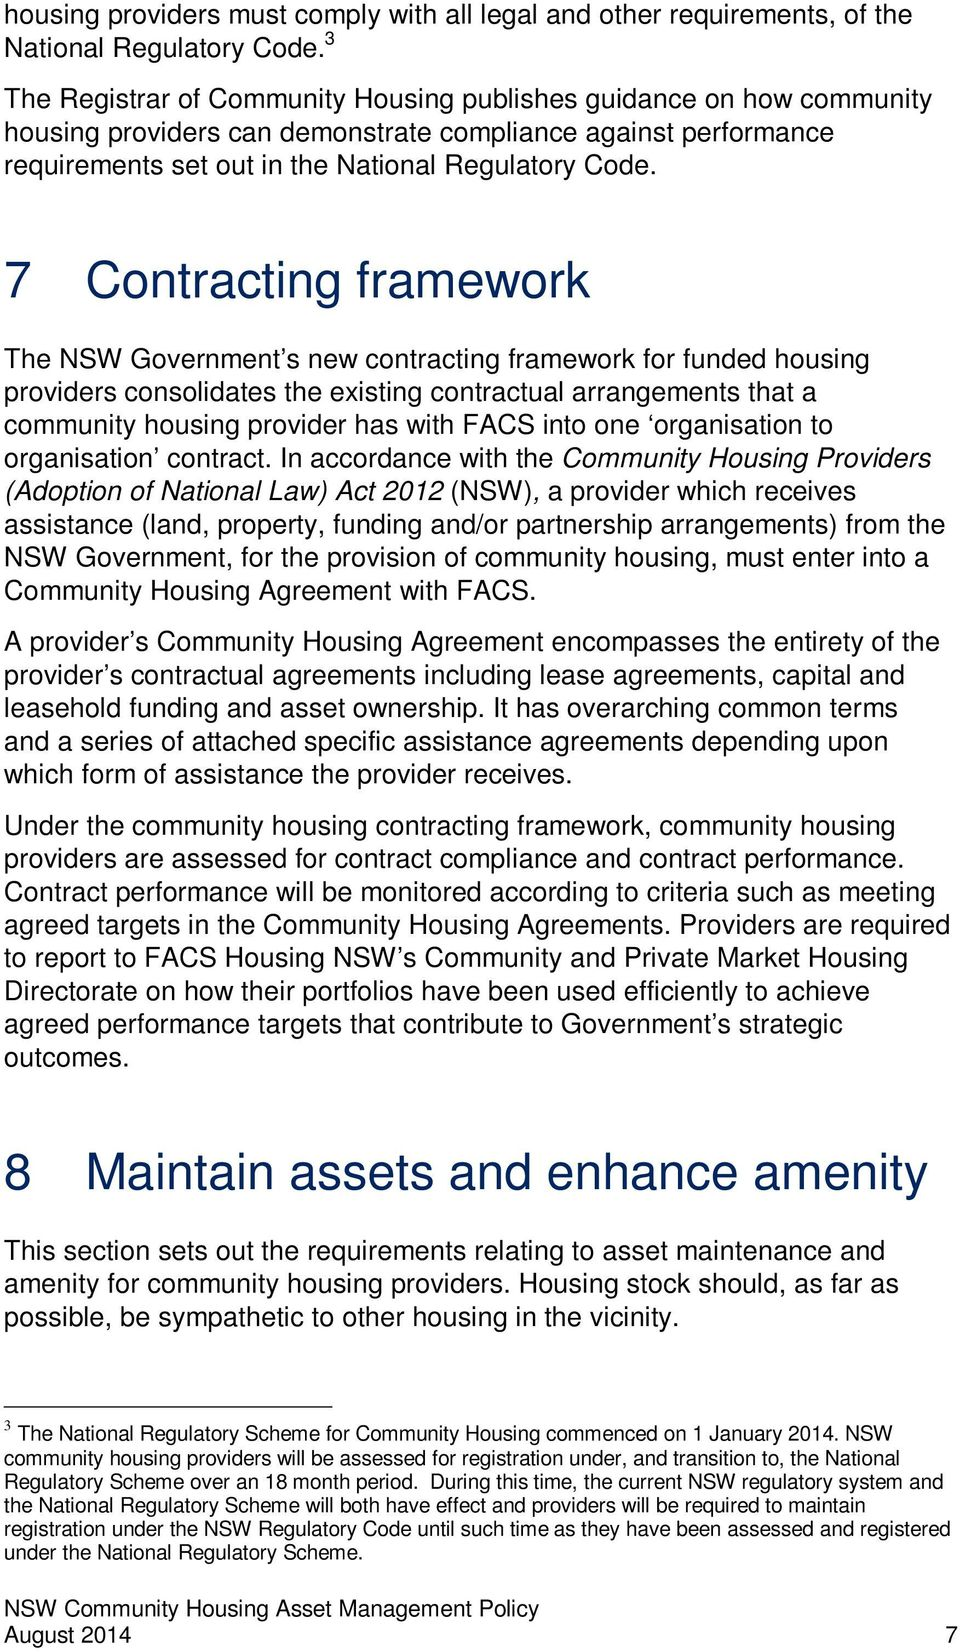 7 Contracting framework The NSW Government s new contracting framework for funded housing providers consolidates the existing contractual arrangements that a community housing provider has with FACS